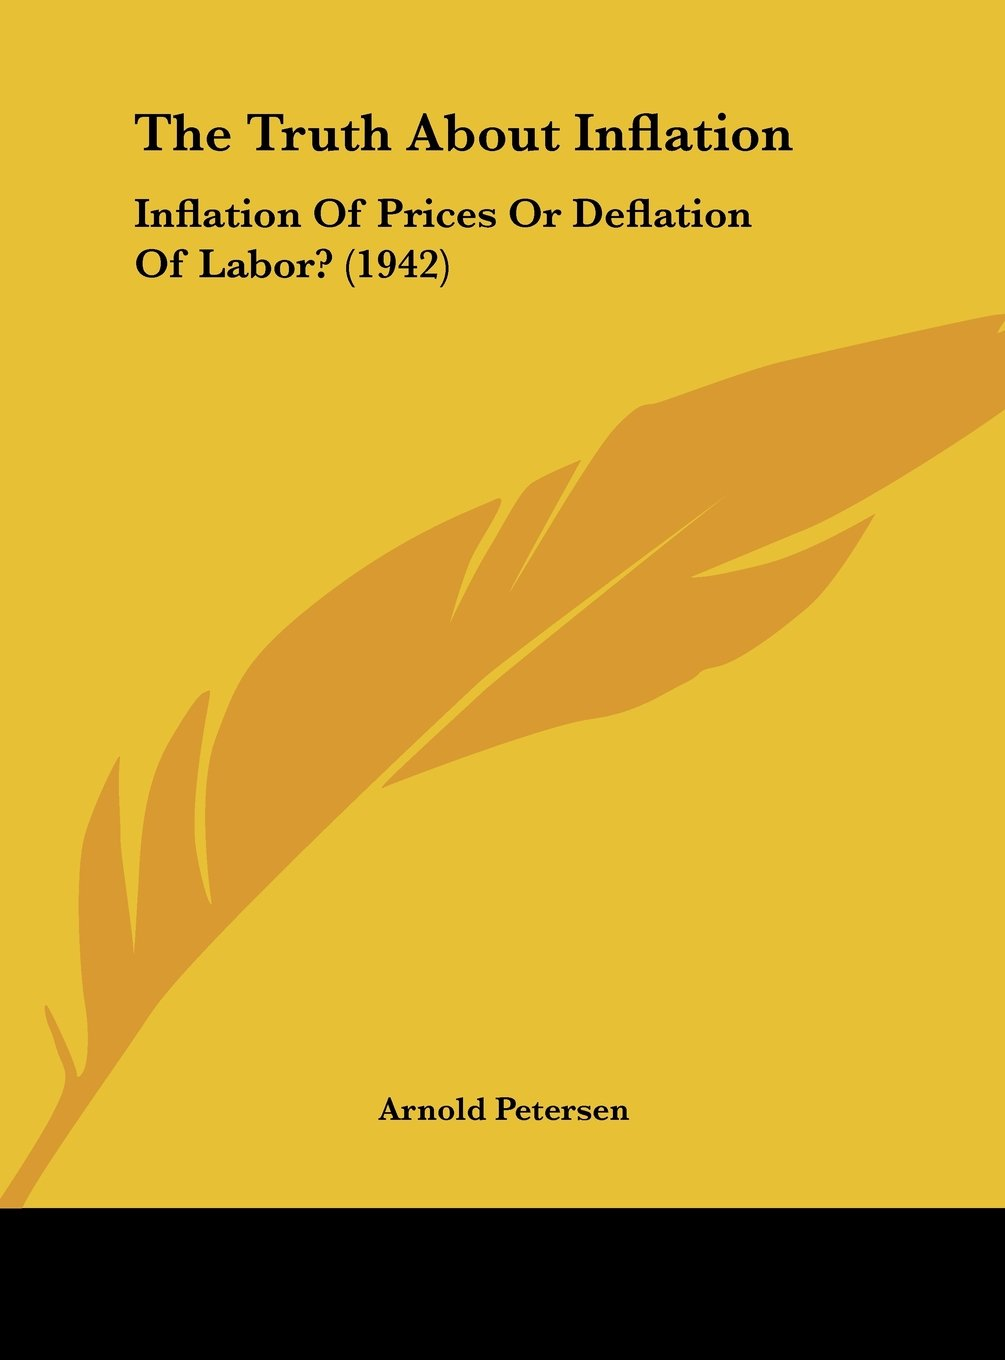 Download The Truth About Inflation: Inflation Of Prices Or Deflation Of Labor? (1942) PDF